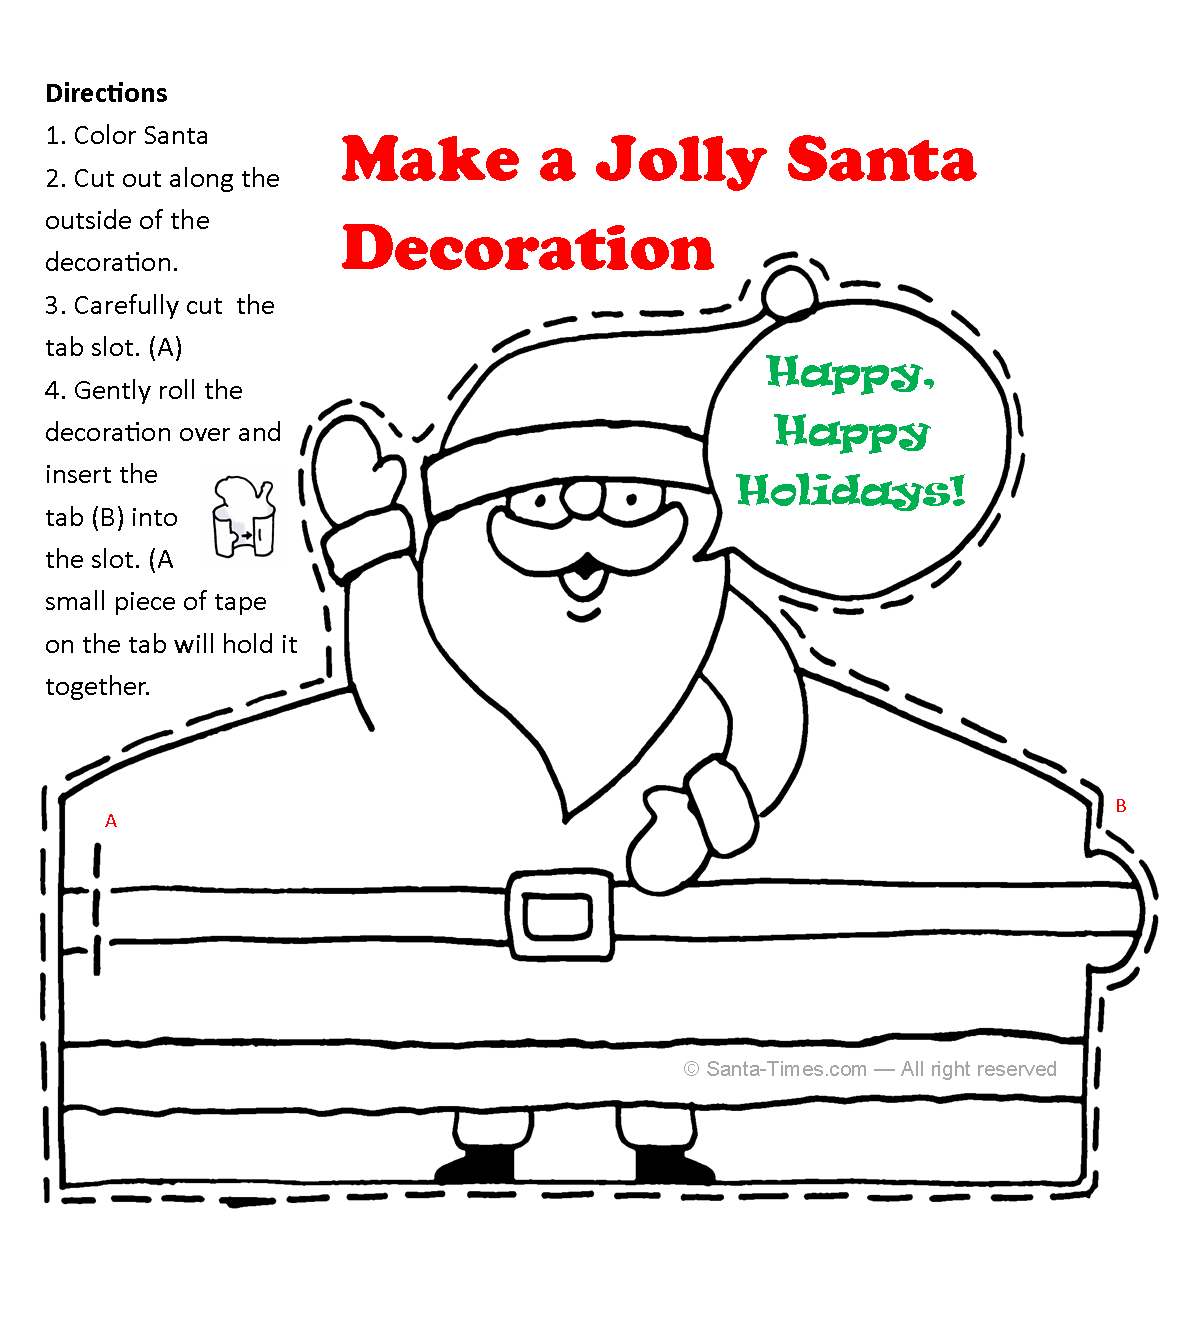 santa claus decoration printout